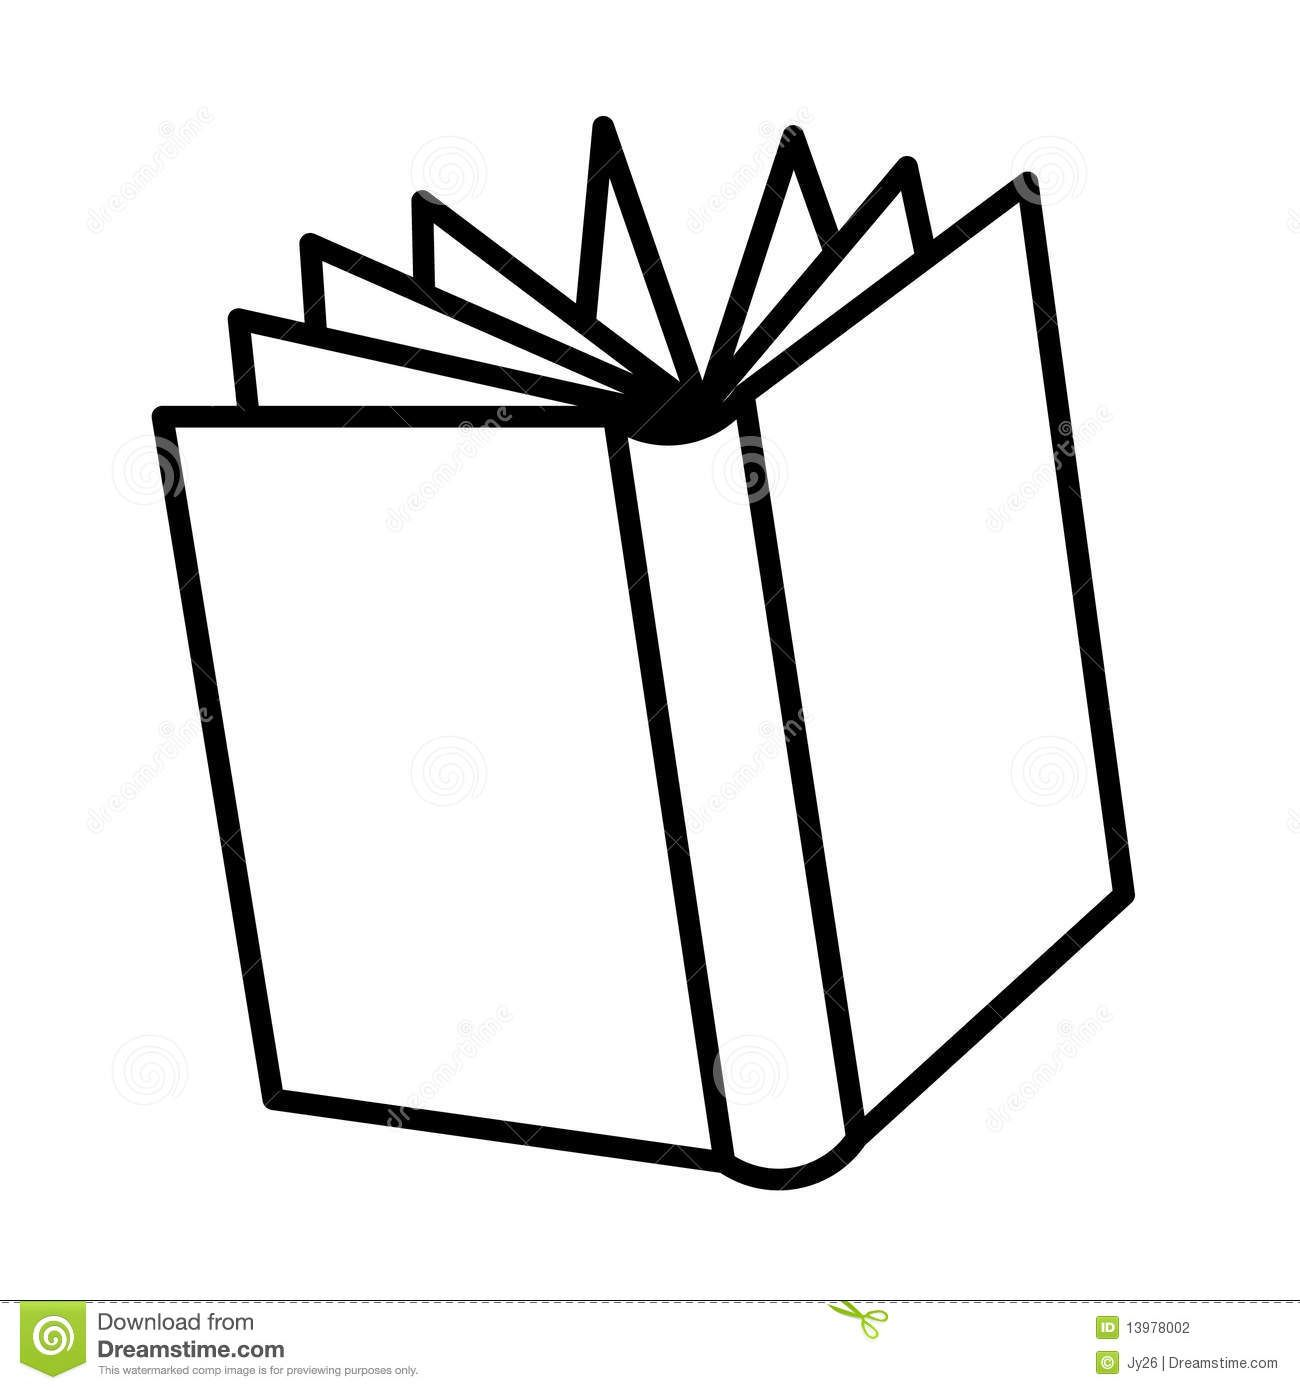 printable open book coloring pages - photo#44